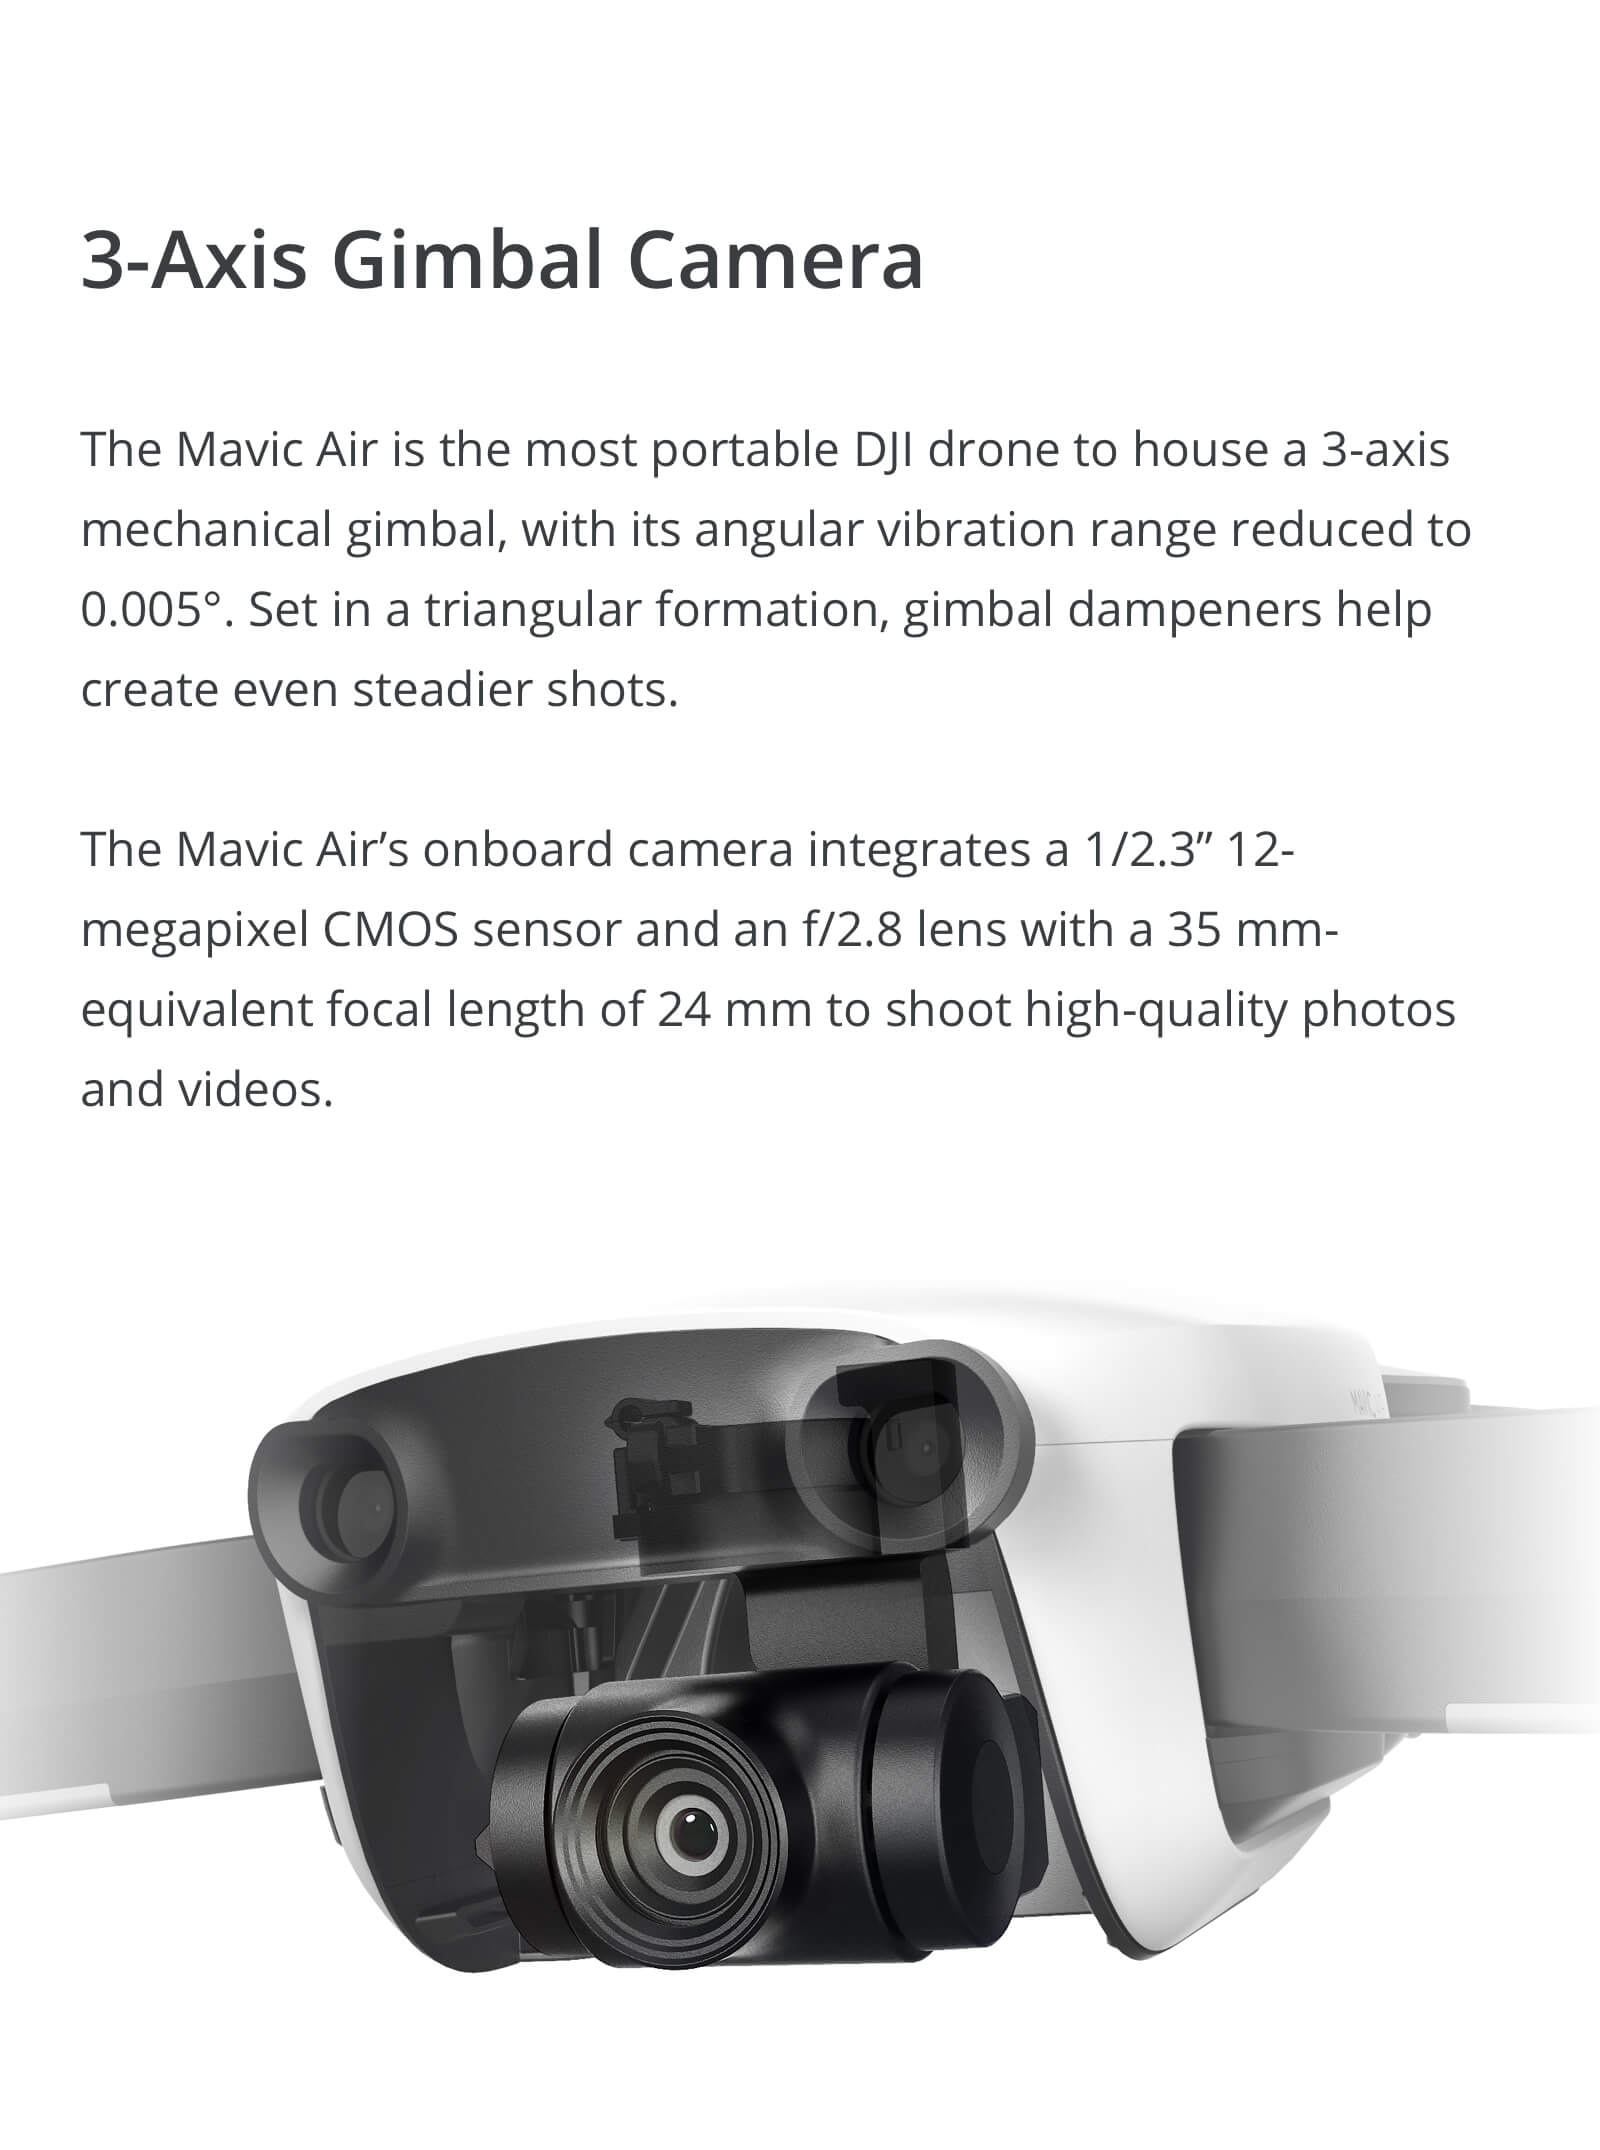 The DJI Mavic Air 3-Axis Gimbal